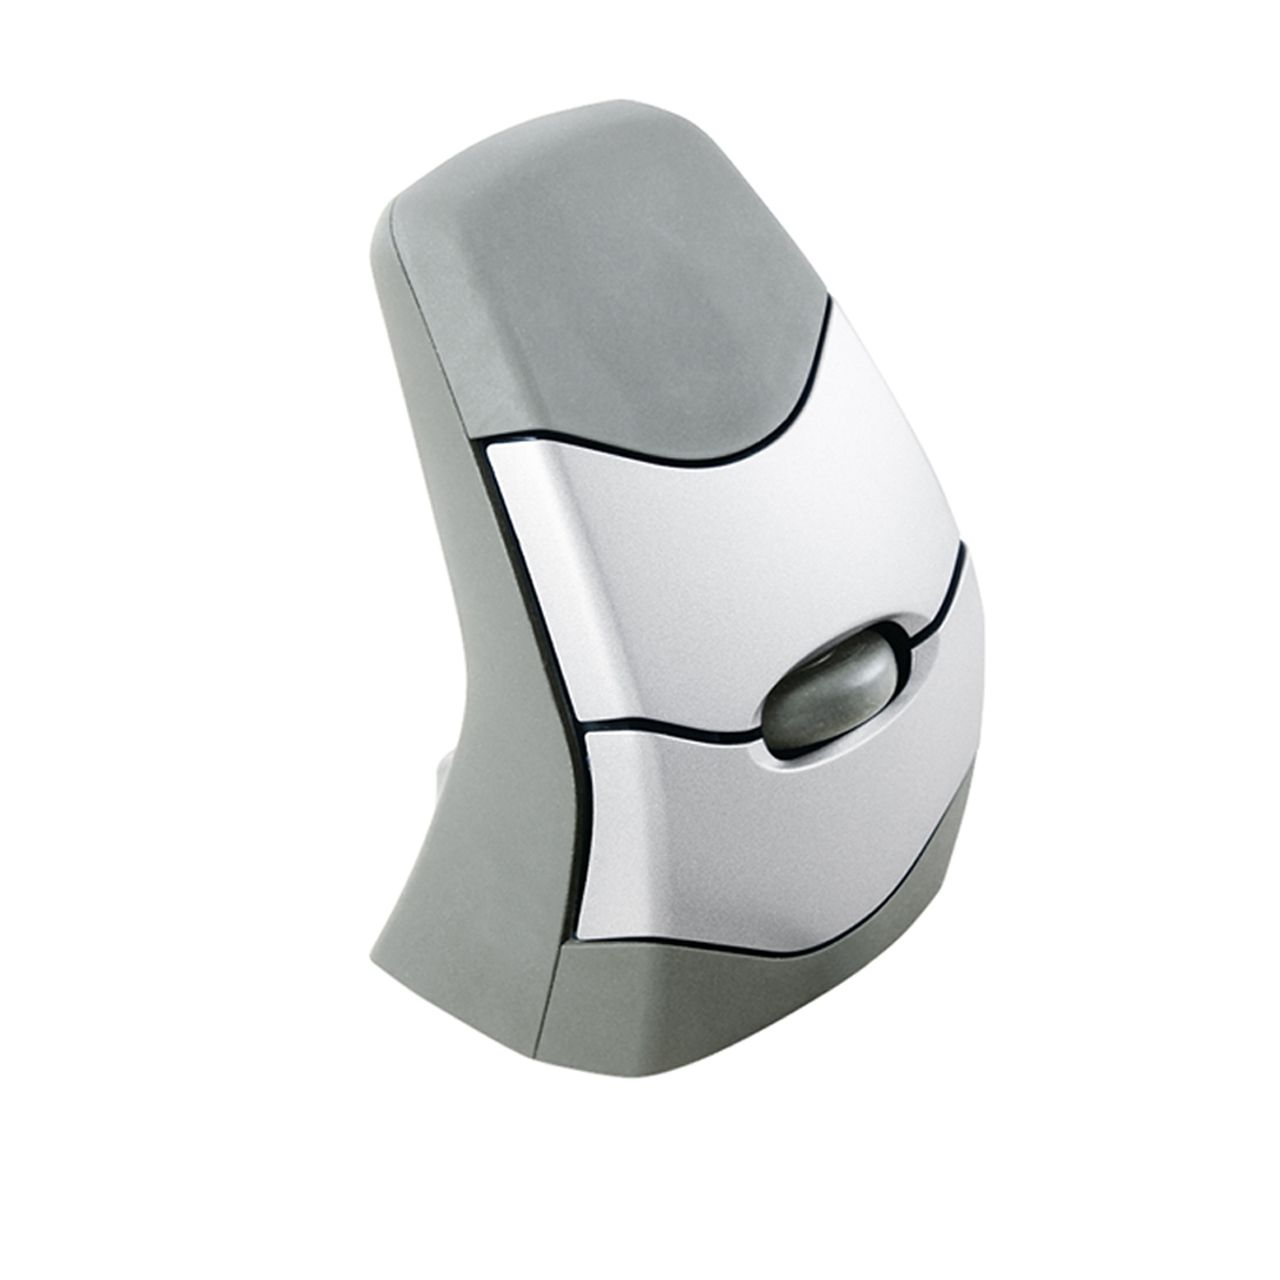 DXT Precision Mouse draadloos zijkant